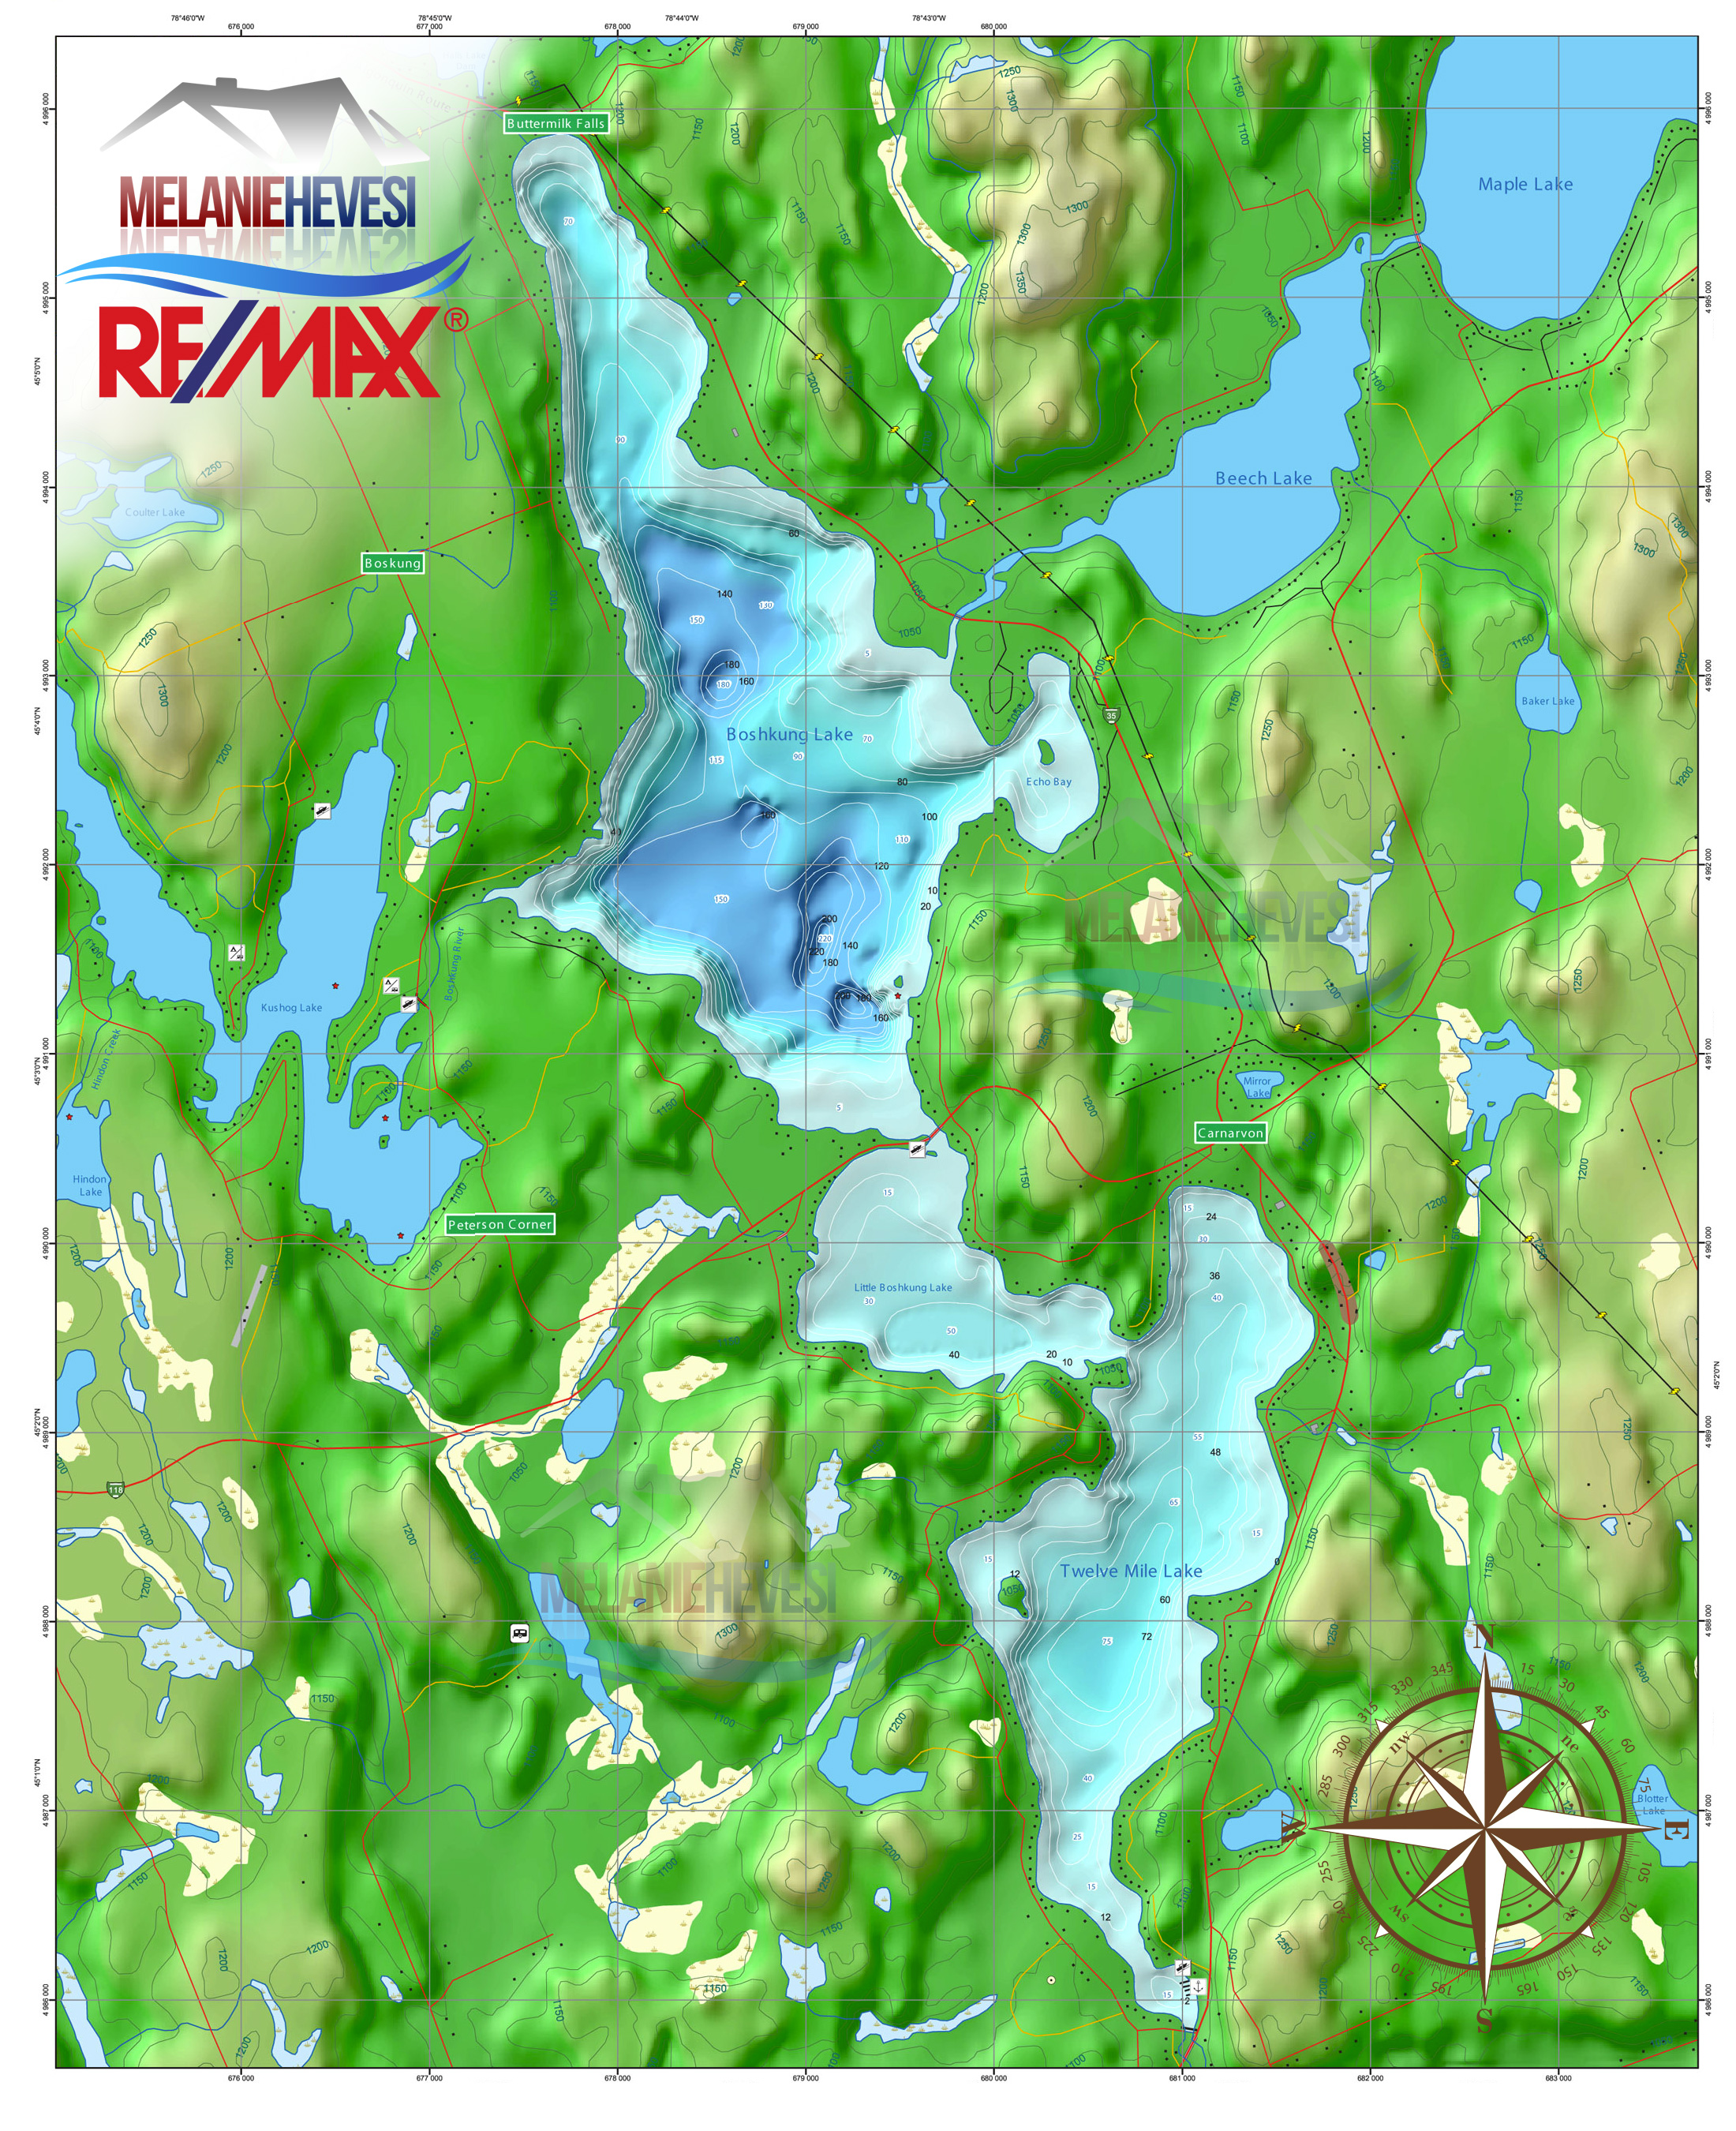 boshkung-tweleve-mile-lake-map-LG